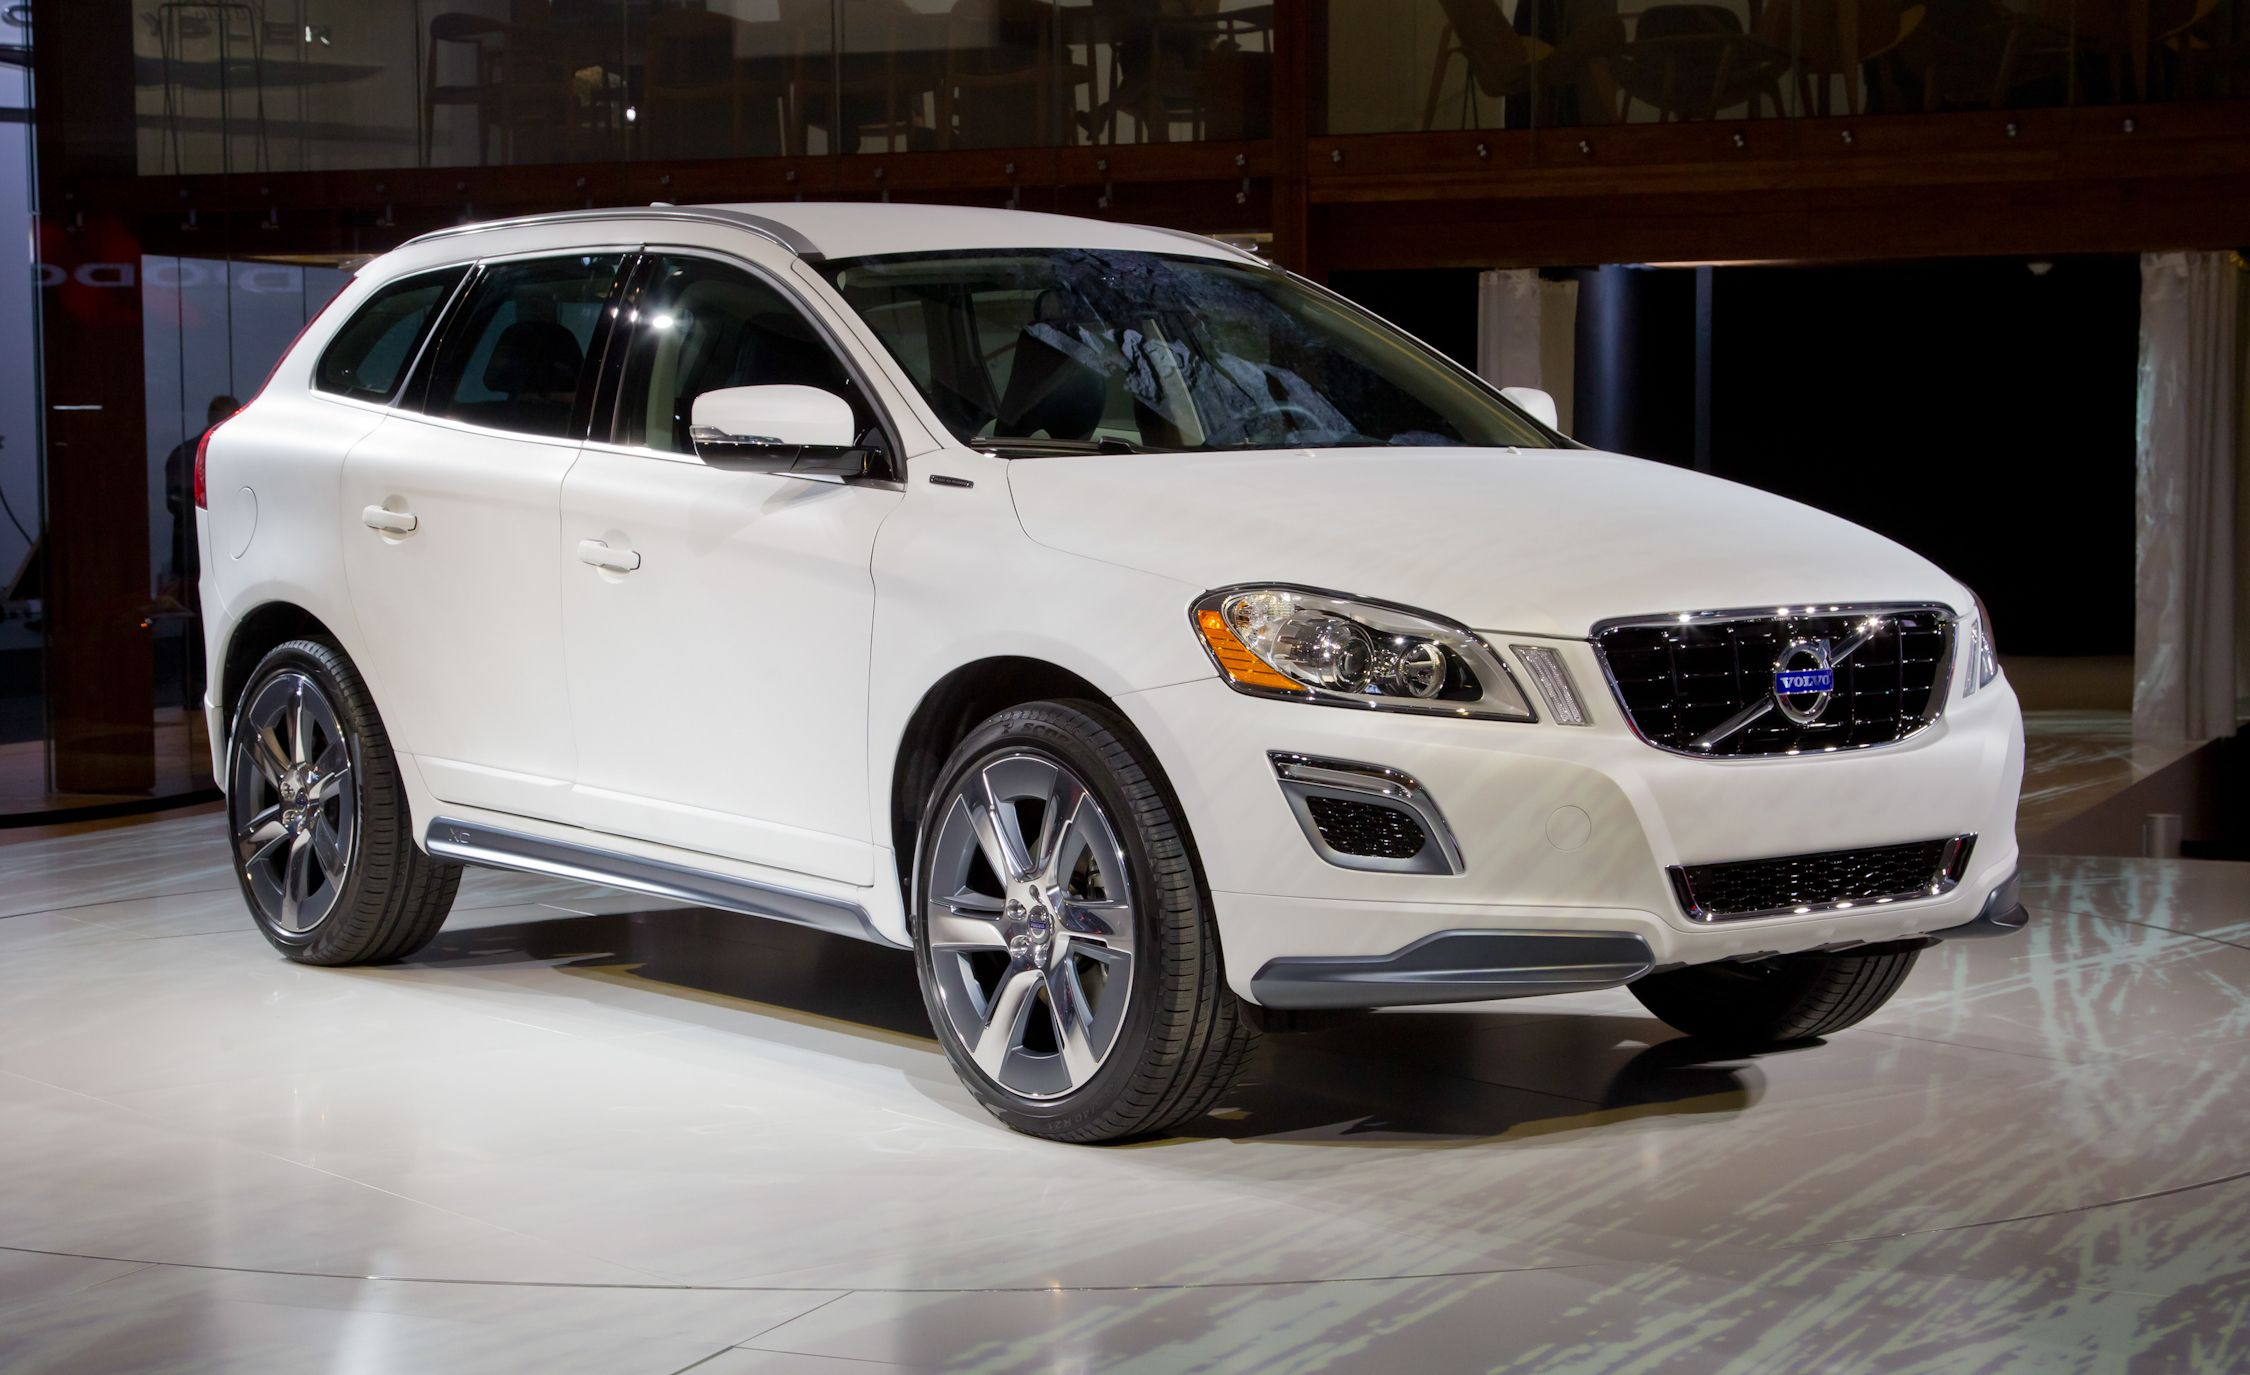 volvo xc60 plug-in hybrid concept at the 2012 detroit show &#8211